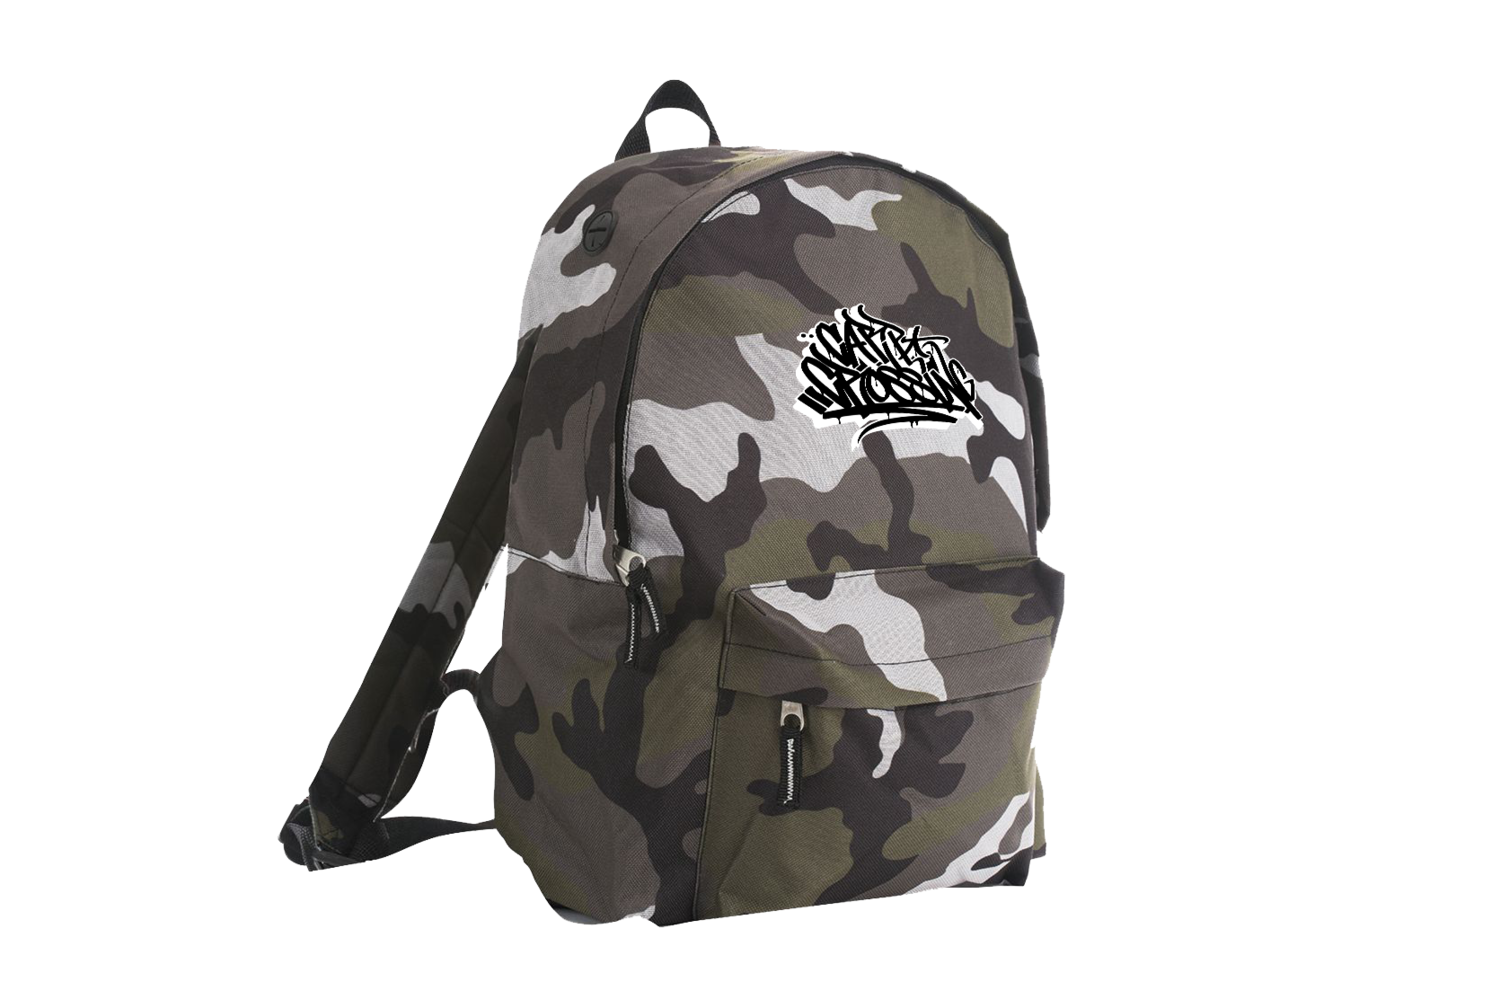 Carpcrossing Urban Camo Backpack